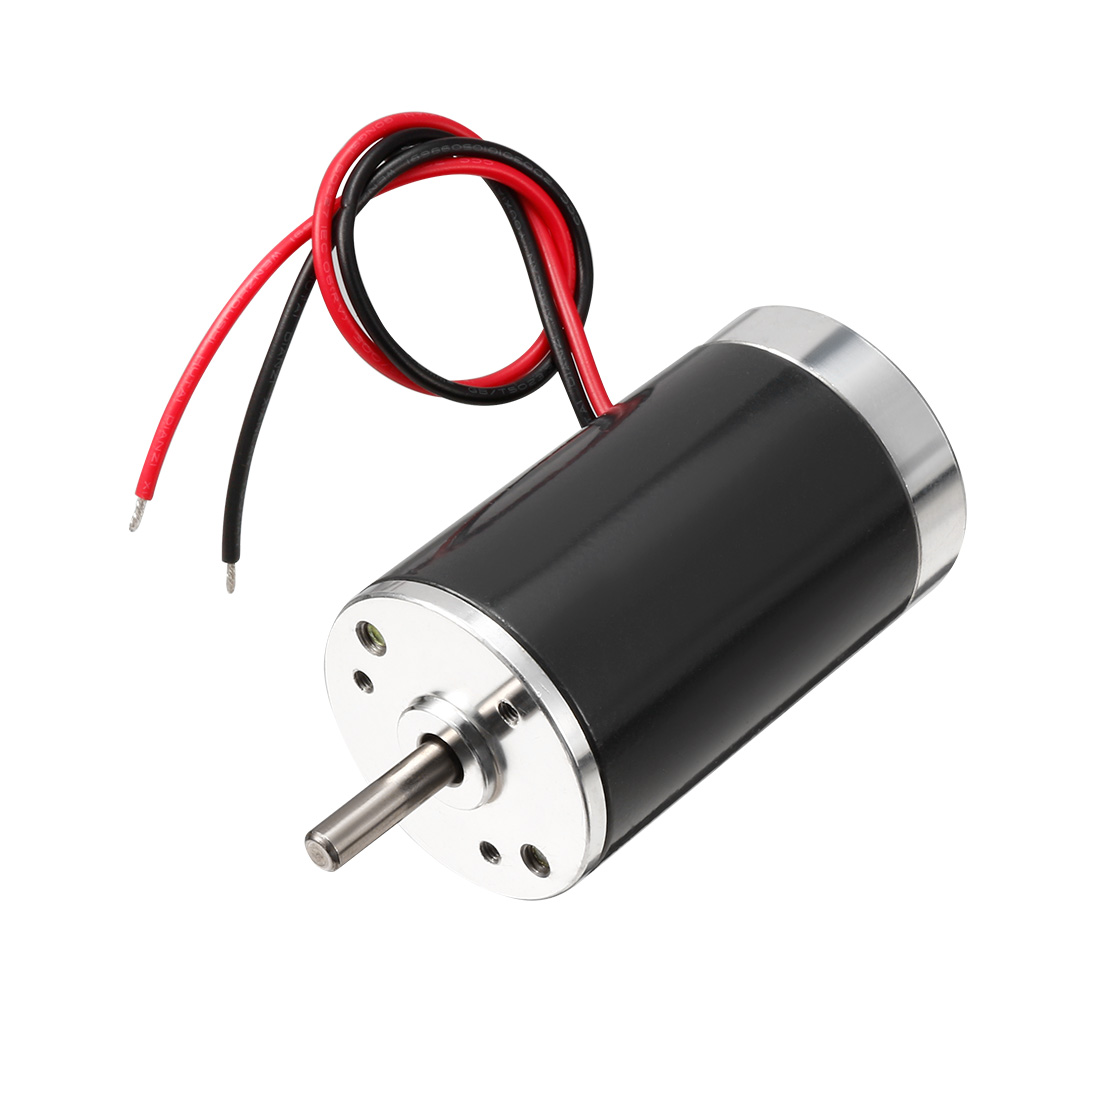 DC 24V 2000 RPM Speed 7W Power 5mm Dia Shaft Wired Connector Metal Electric Motor